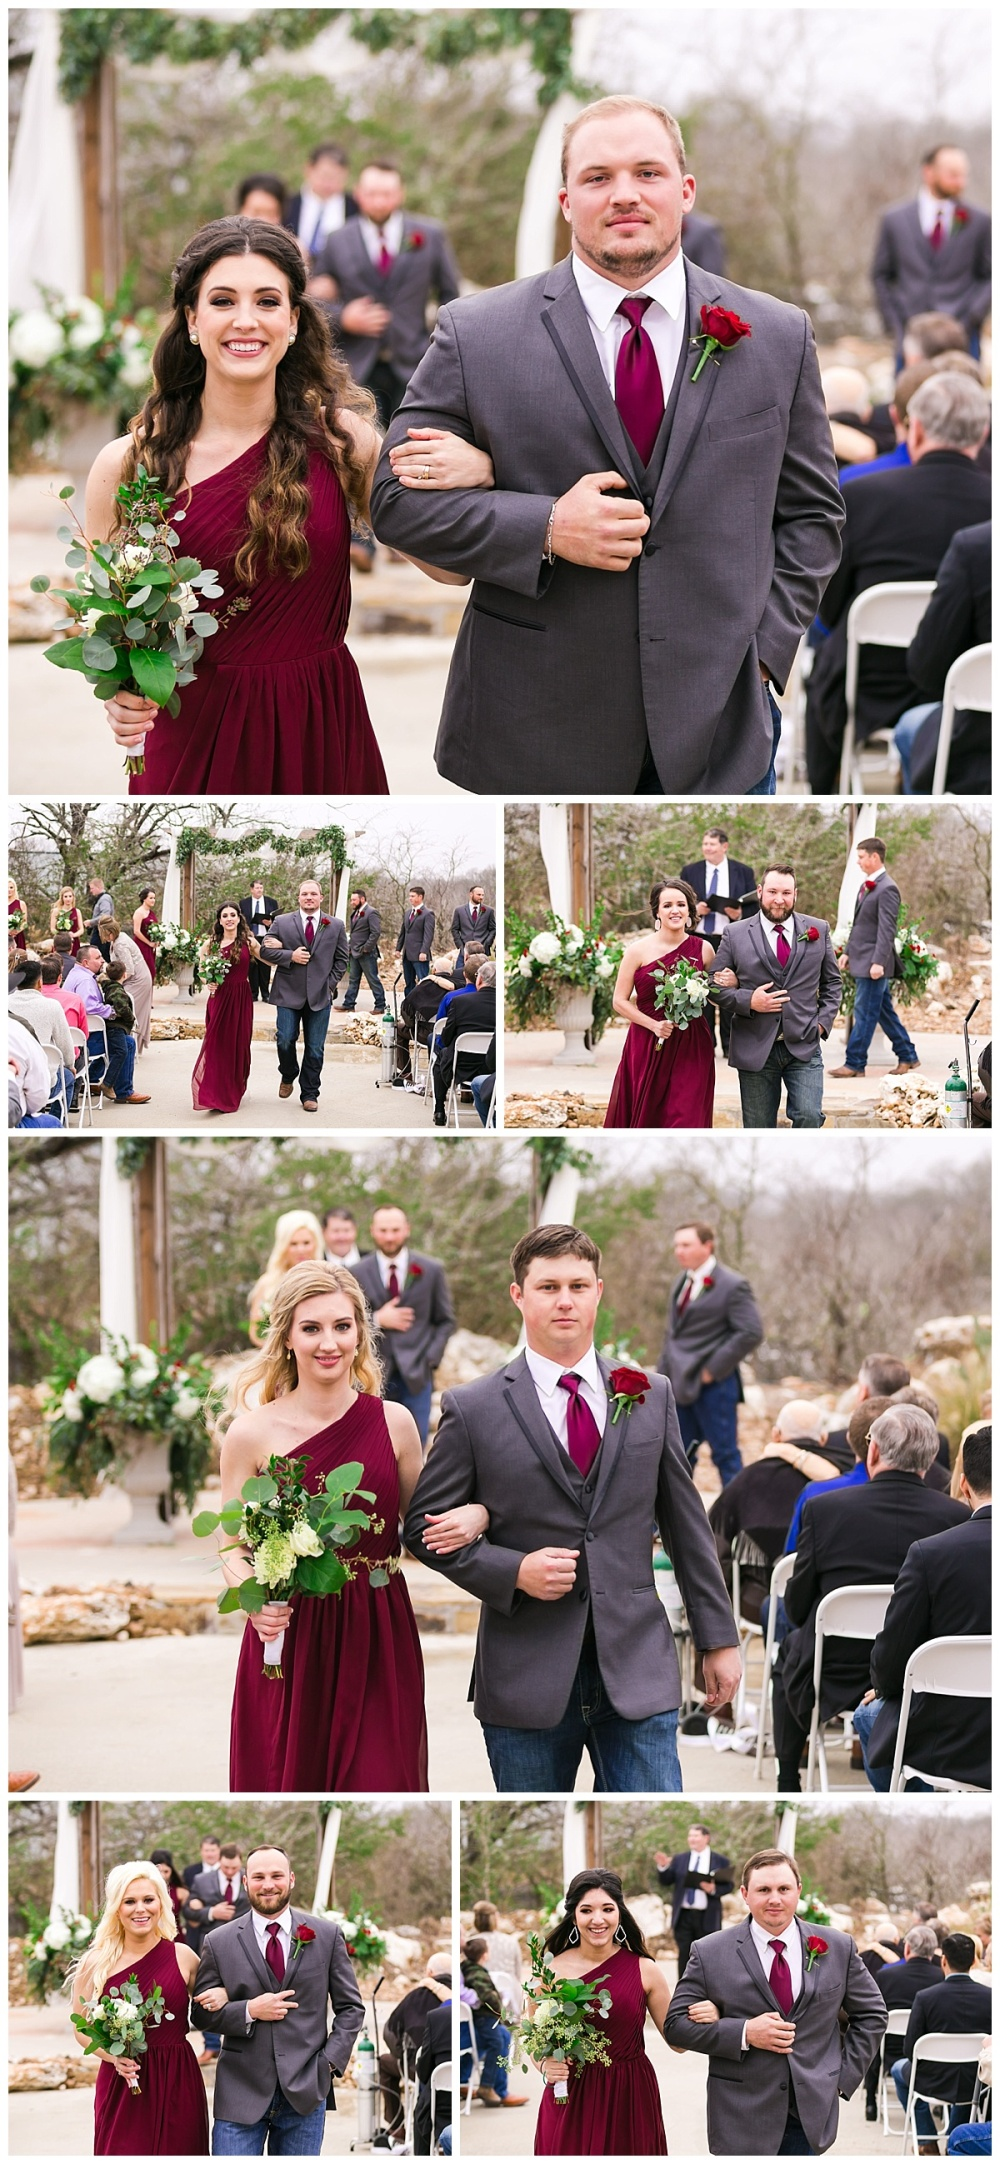 Carly-Barton-Photography-Geronimo-Oaks-Wedding-Venue-Texas-Hill-Country-Ronnie-Sarah_0102.jpg